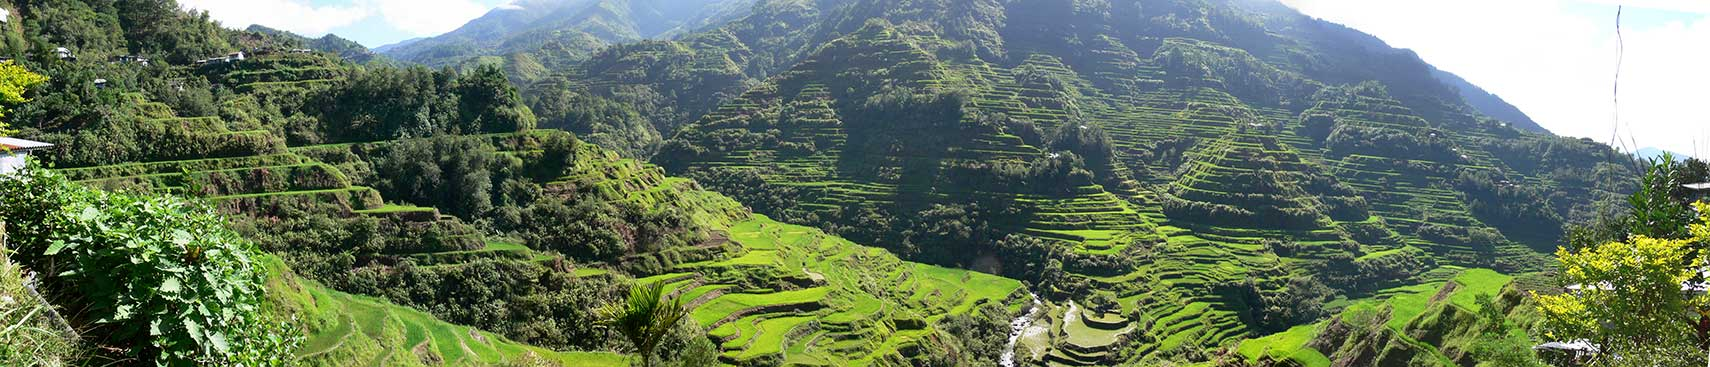 Banaue Rice Terraces, Ifugao Province, Philippines